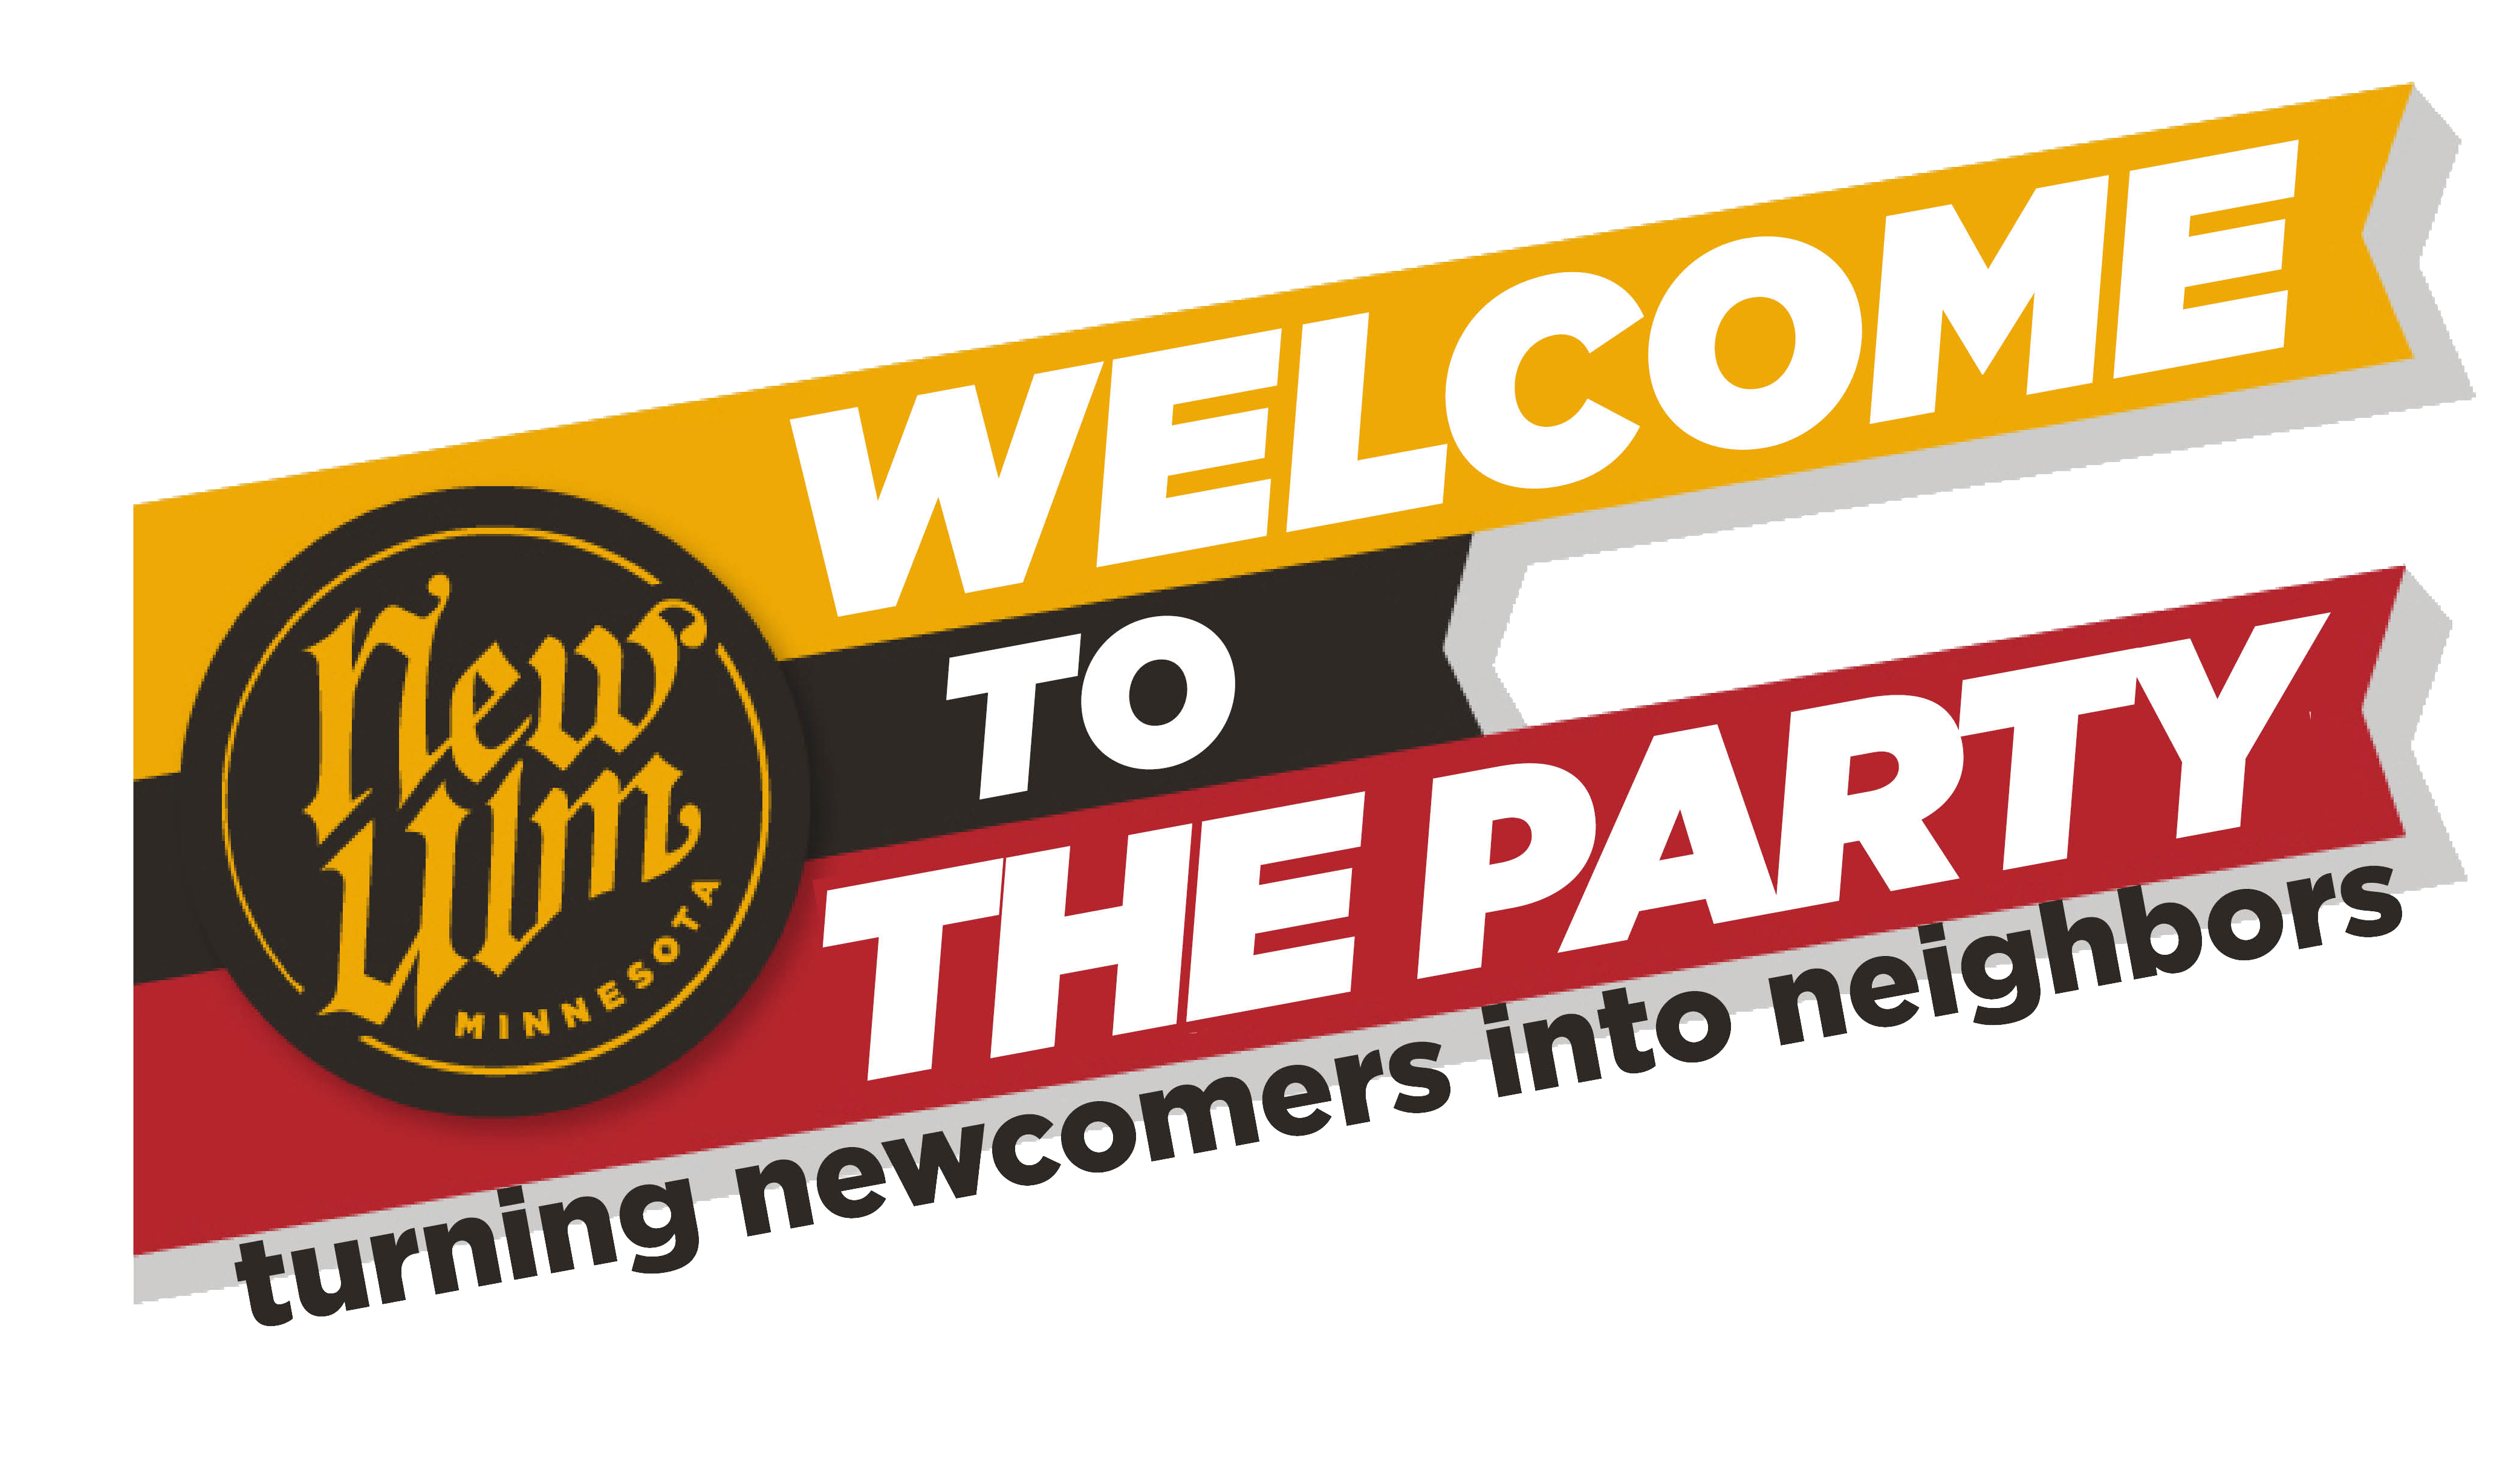 Welcome to the Party logo png